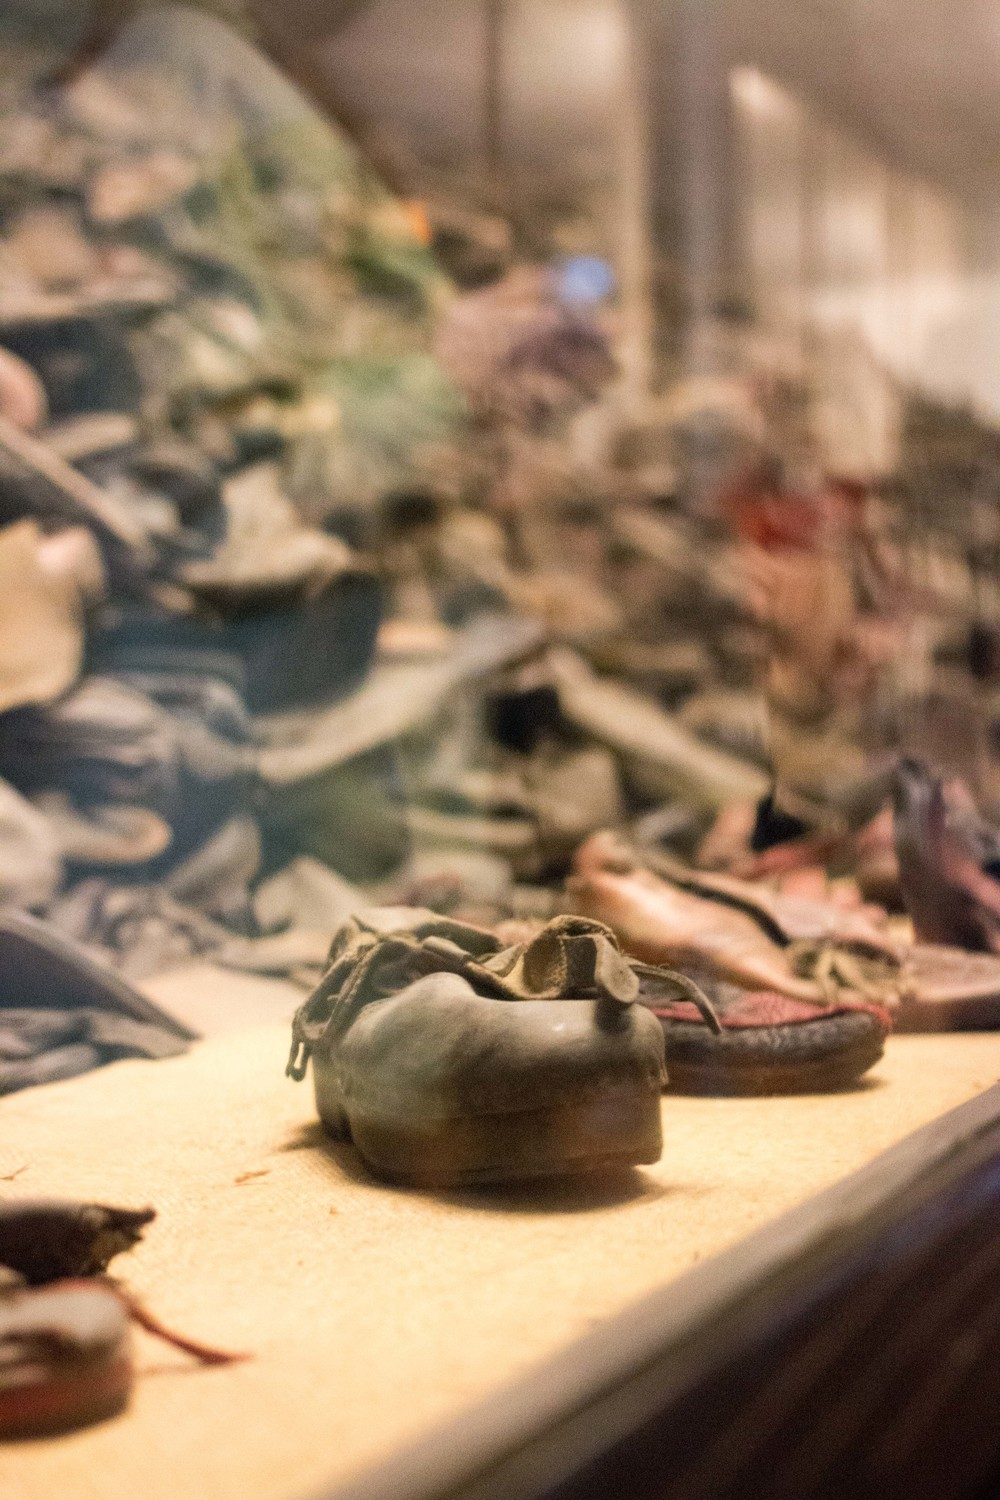 Piles of shoes from the prisoners and victims